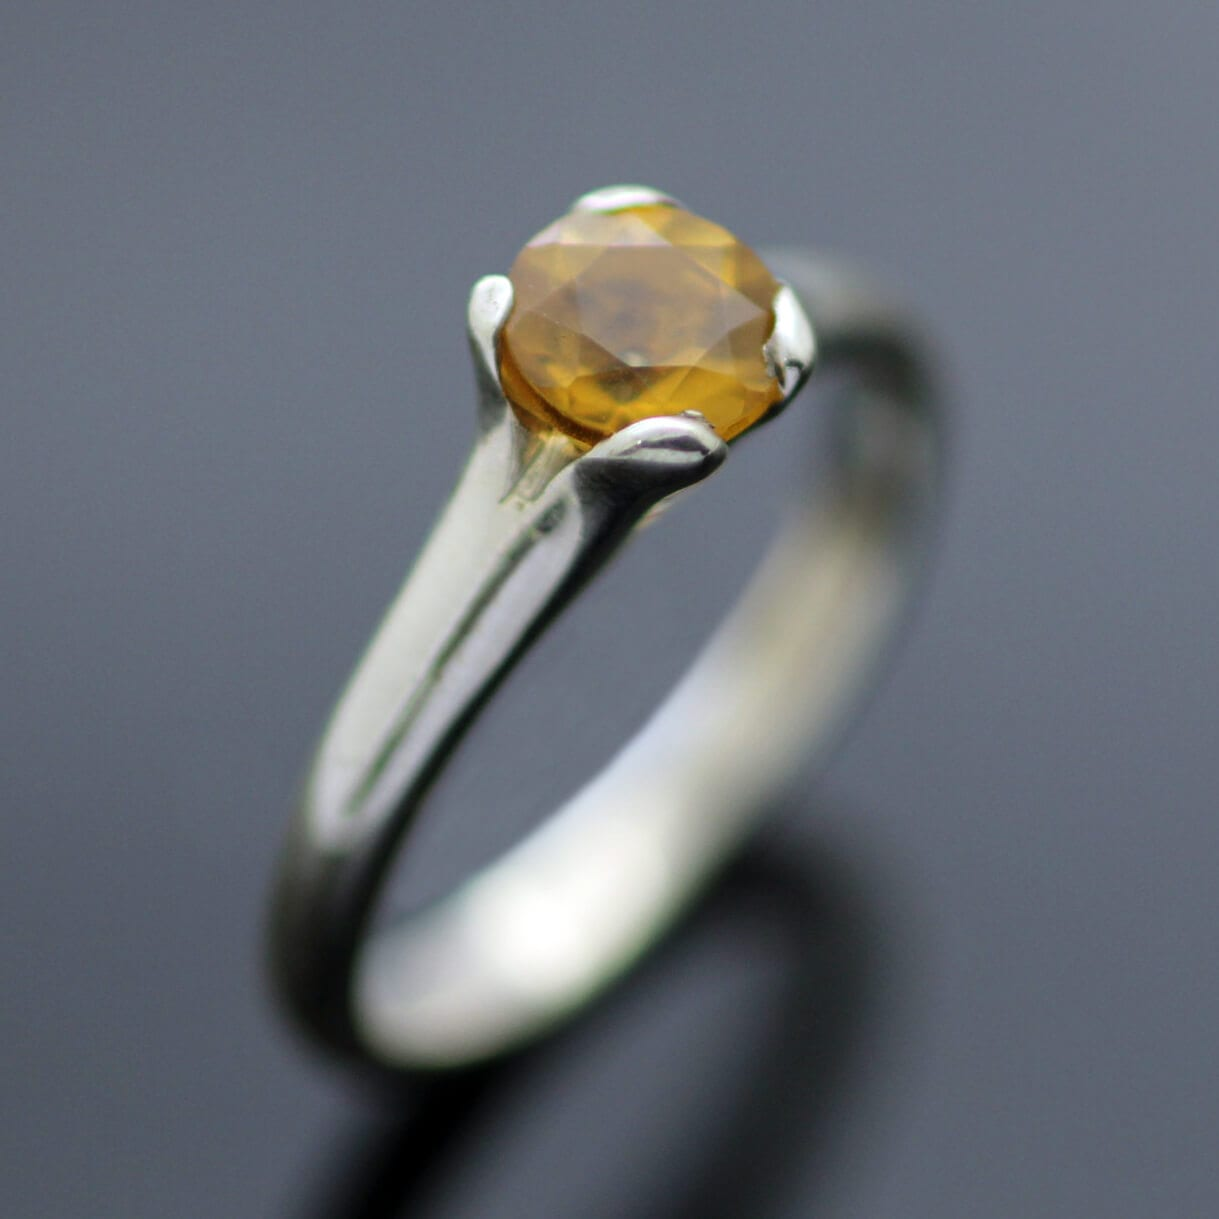 Round Brilliant Citrine gemstone set in Sterling Silver by Julian Stephens